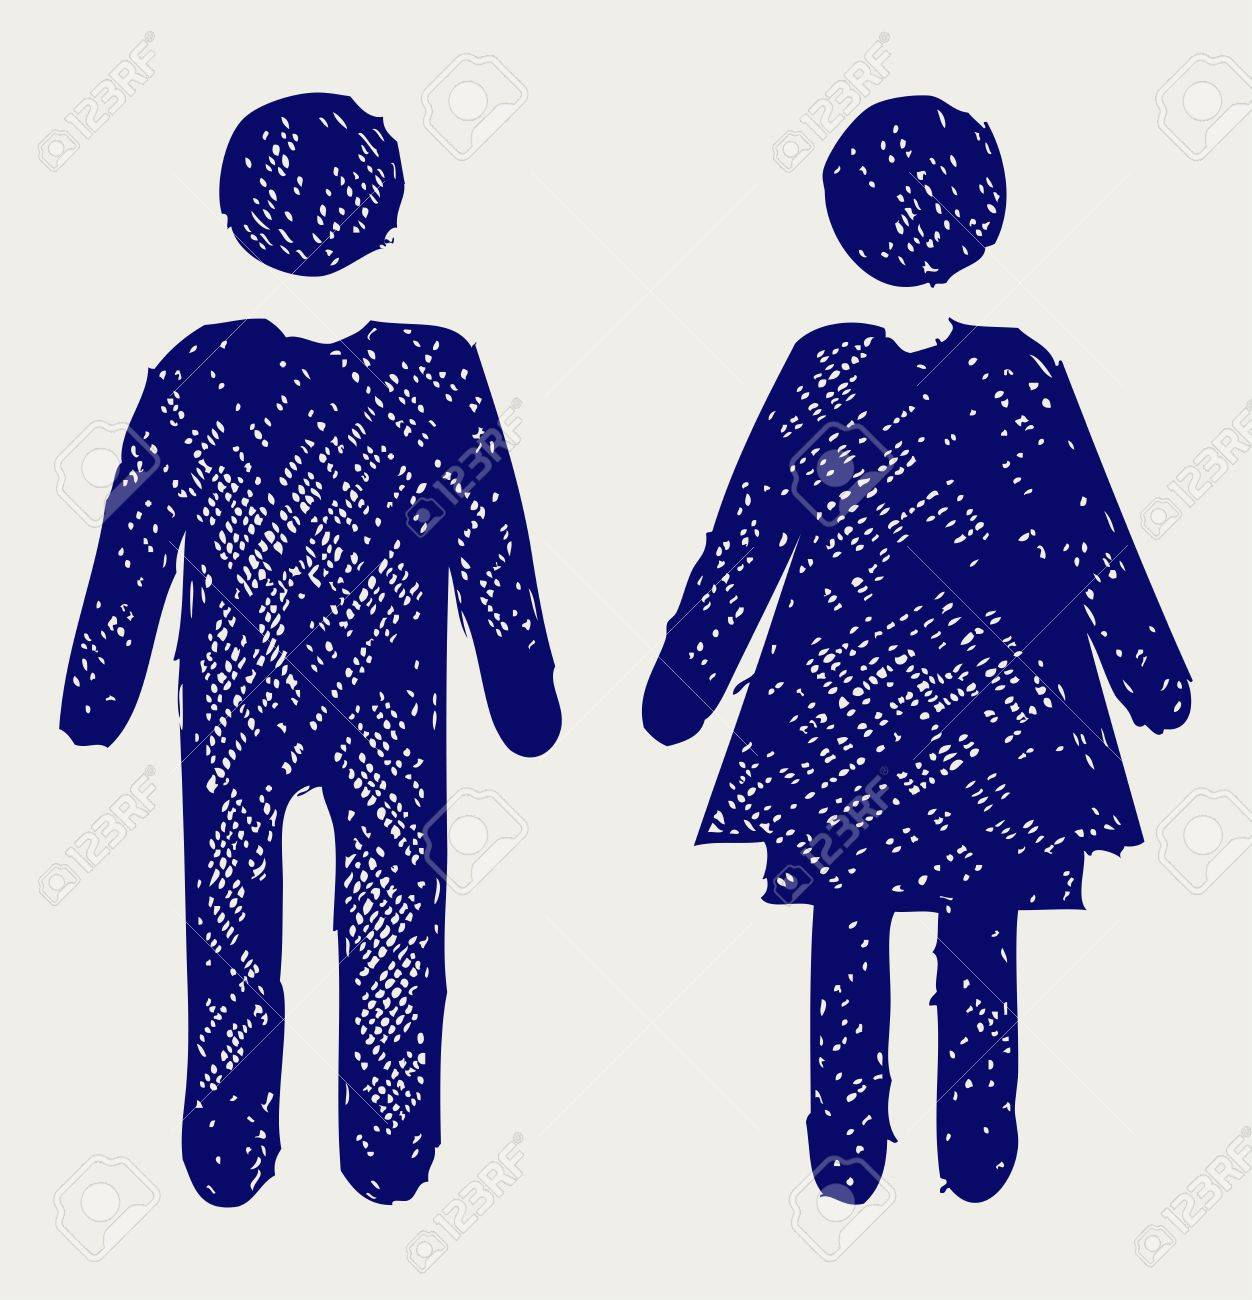 Bathroom Signs Holding Hands 6,559 bathroom gender sign cliparts, stock vector and royalty free